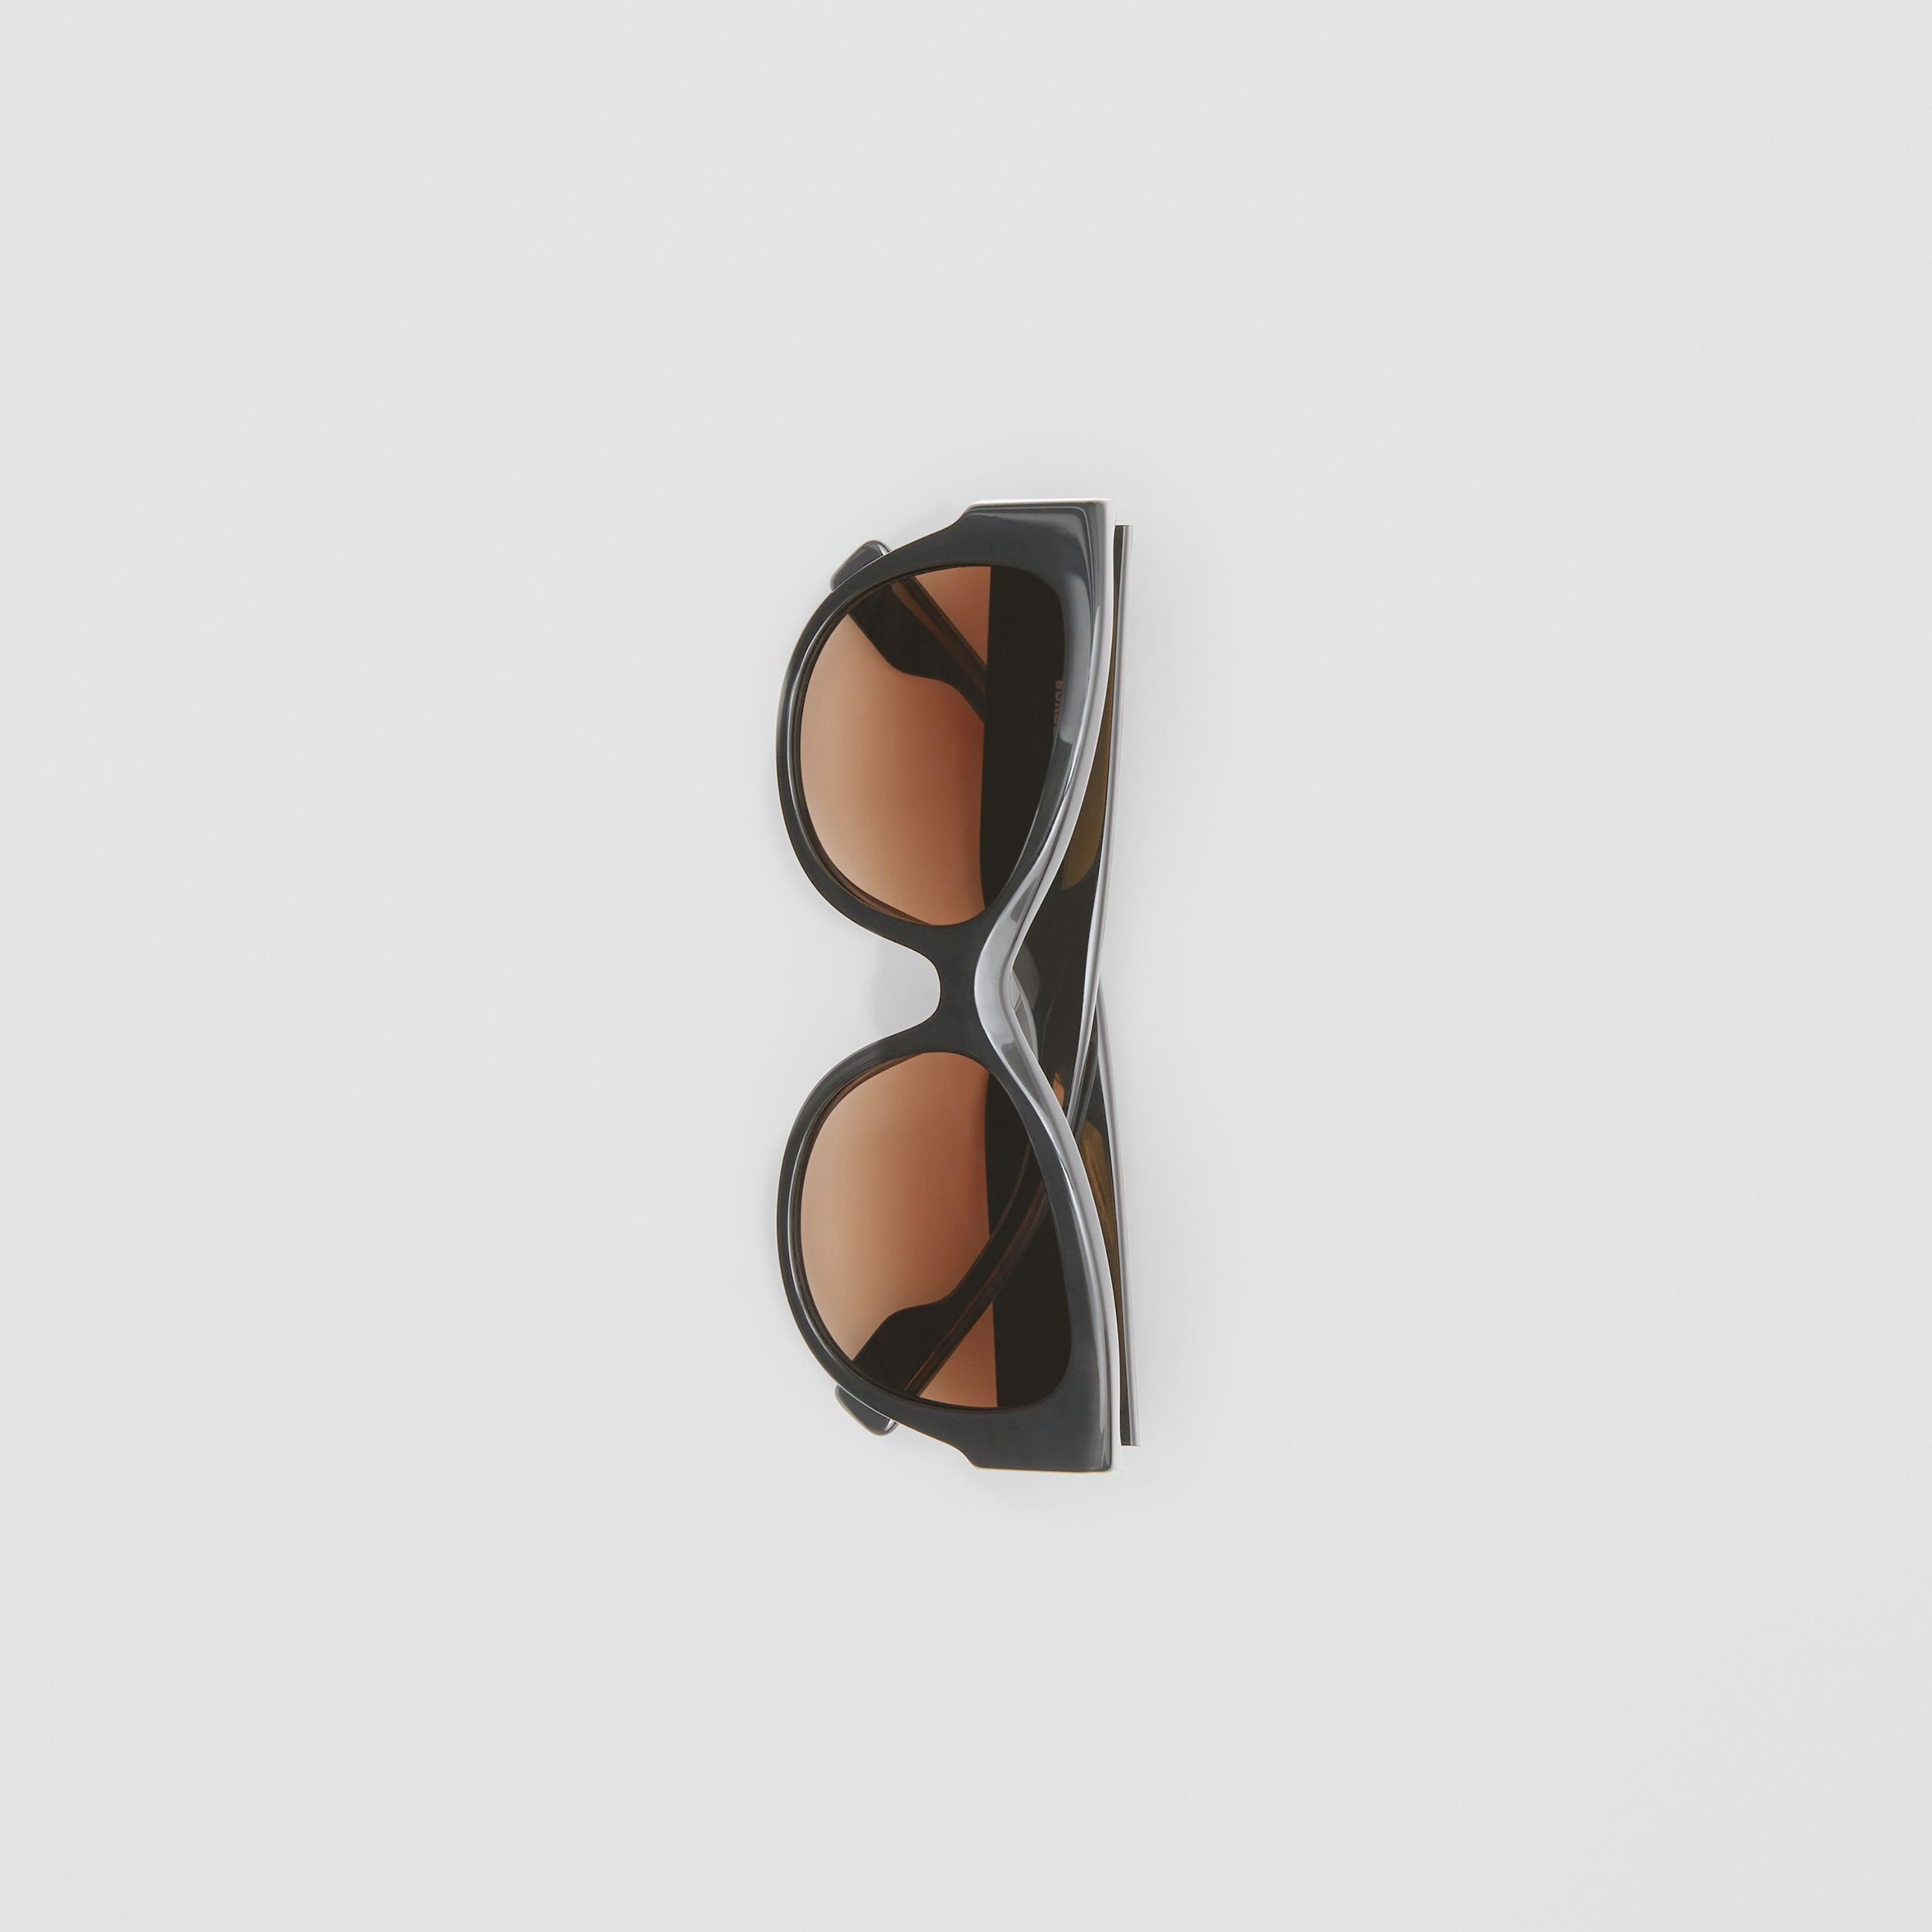 Monogram Detail Butterfly Frame Sunglasses in Black / Beige - Women | Burberry Australia - 3